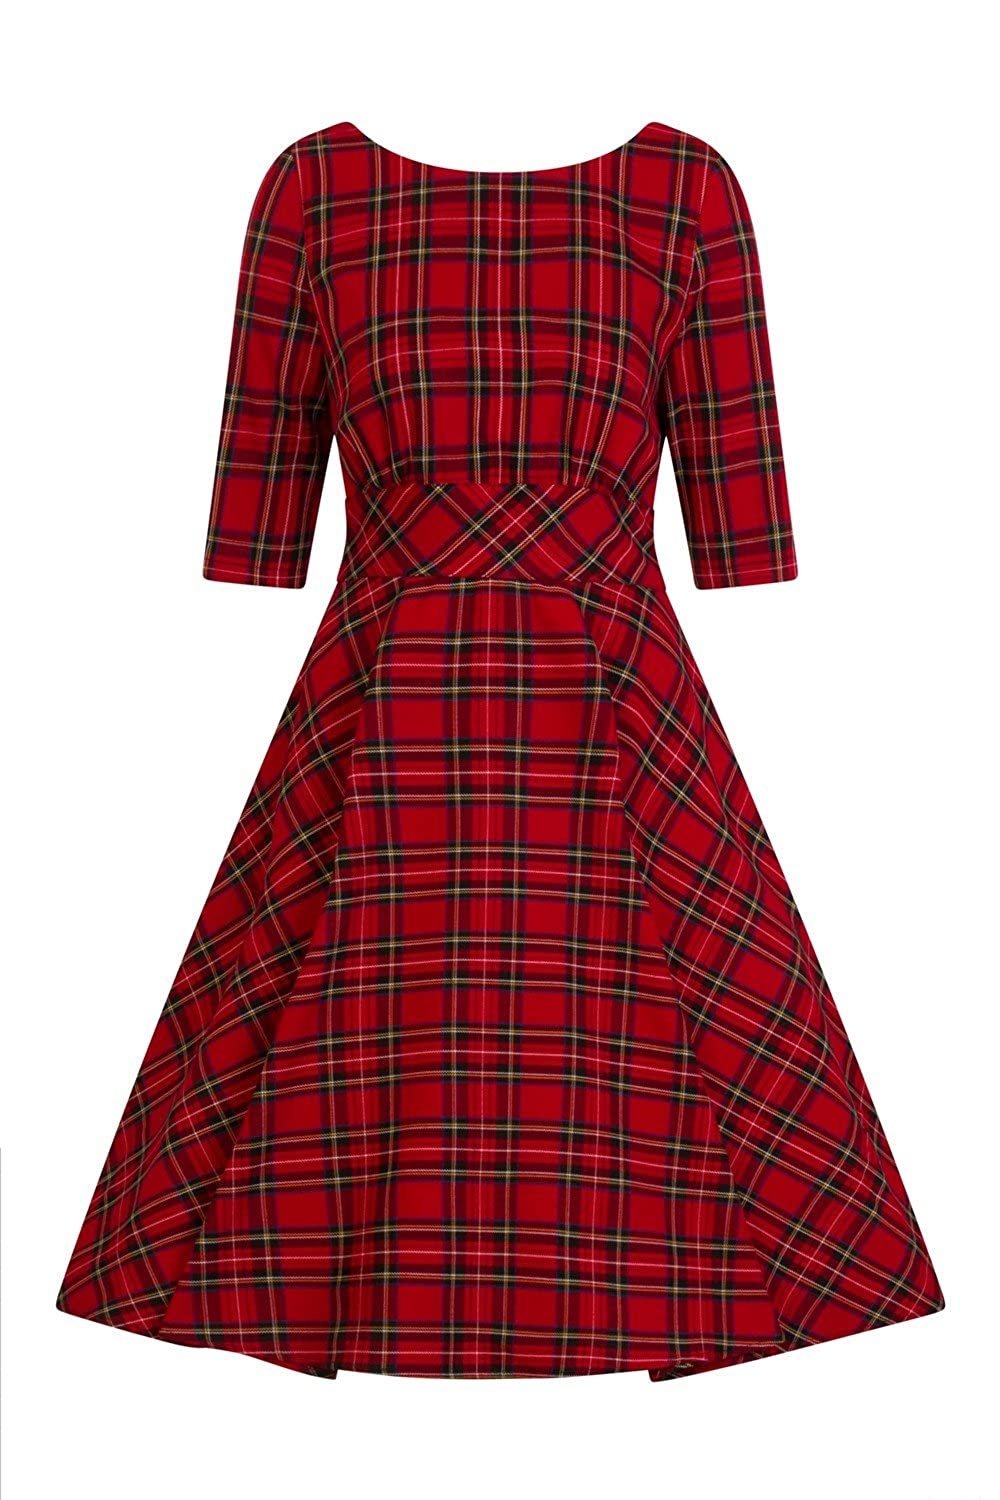 Vintage Christmas Gift Ideas for Women Hell Bunny Irvine Tartan 1950s Vintage Retro Dress XS-4XL $72.99 AT vintagedancer.com